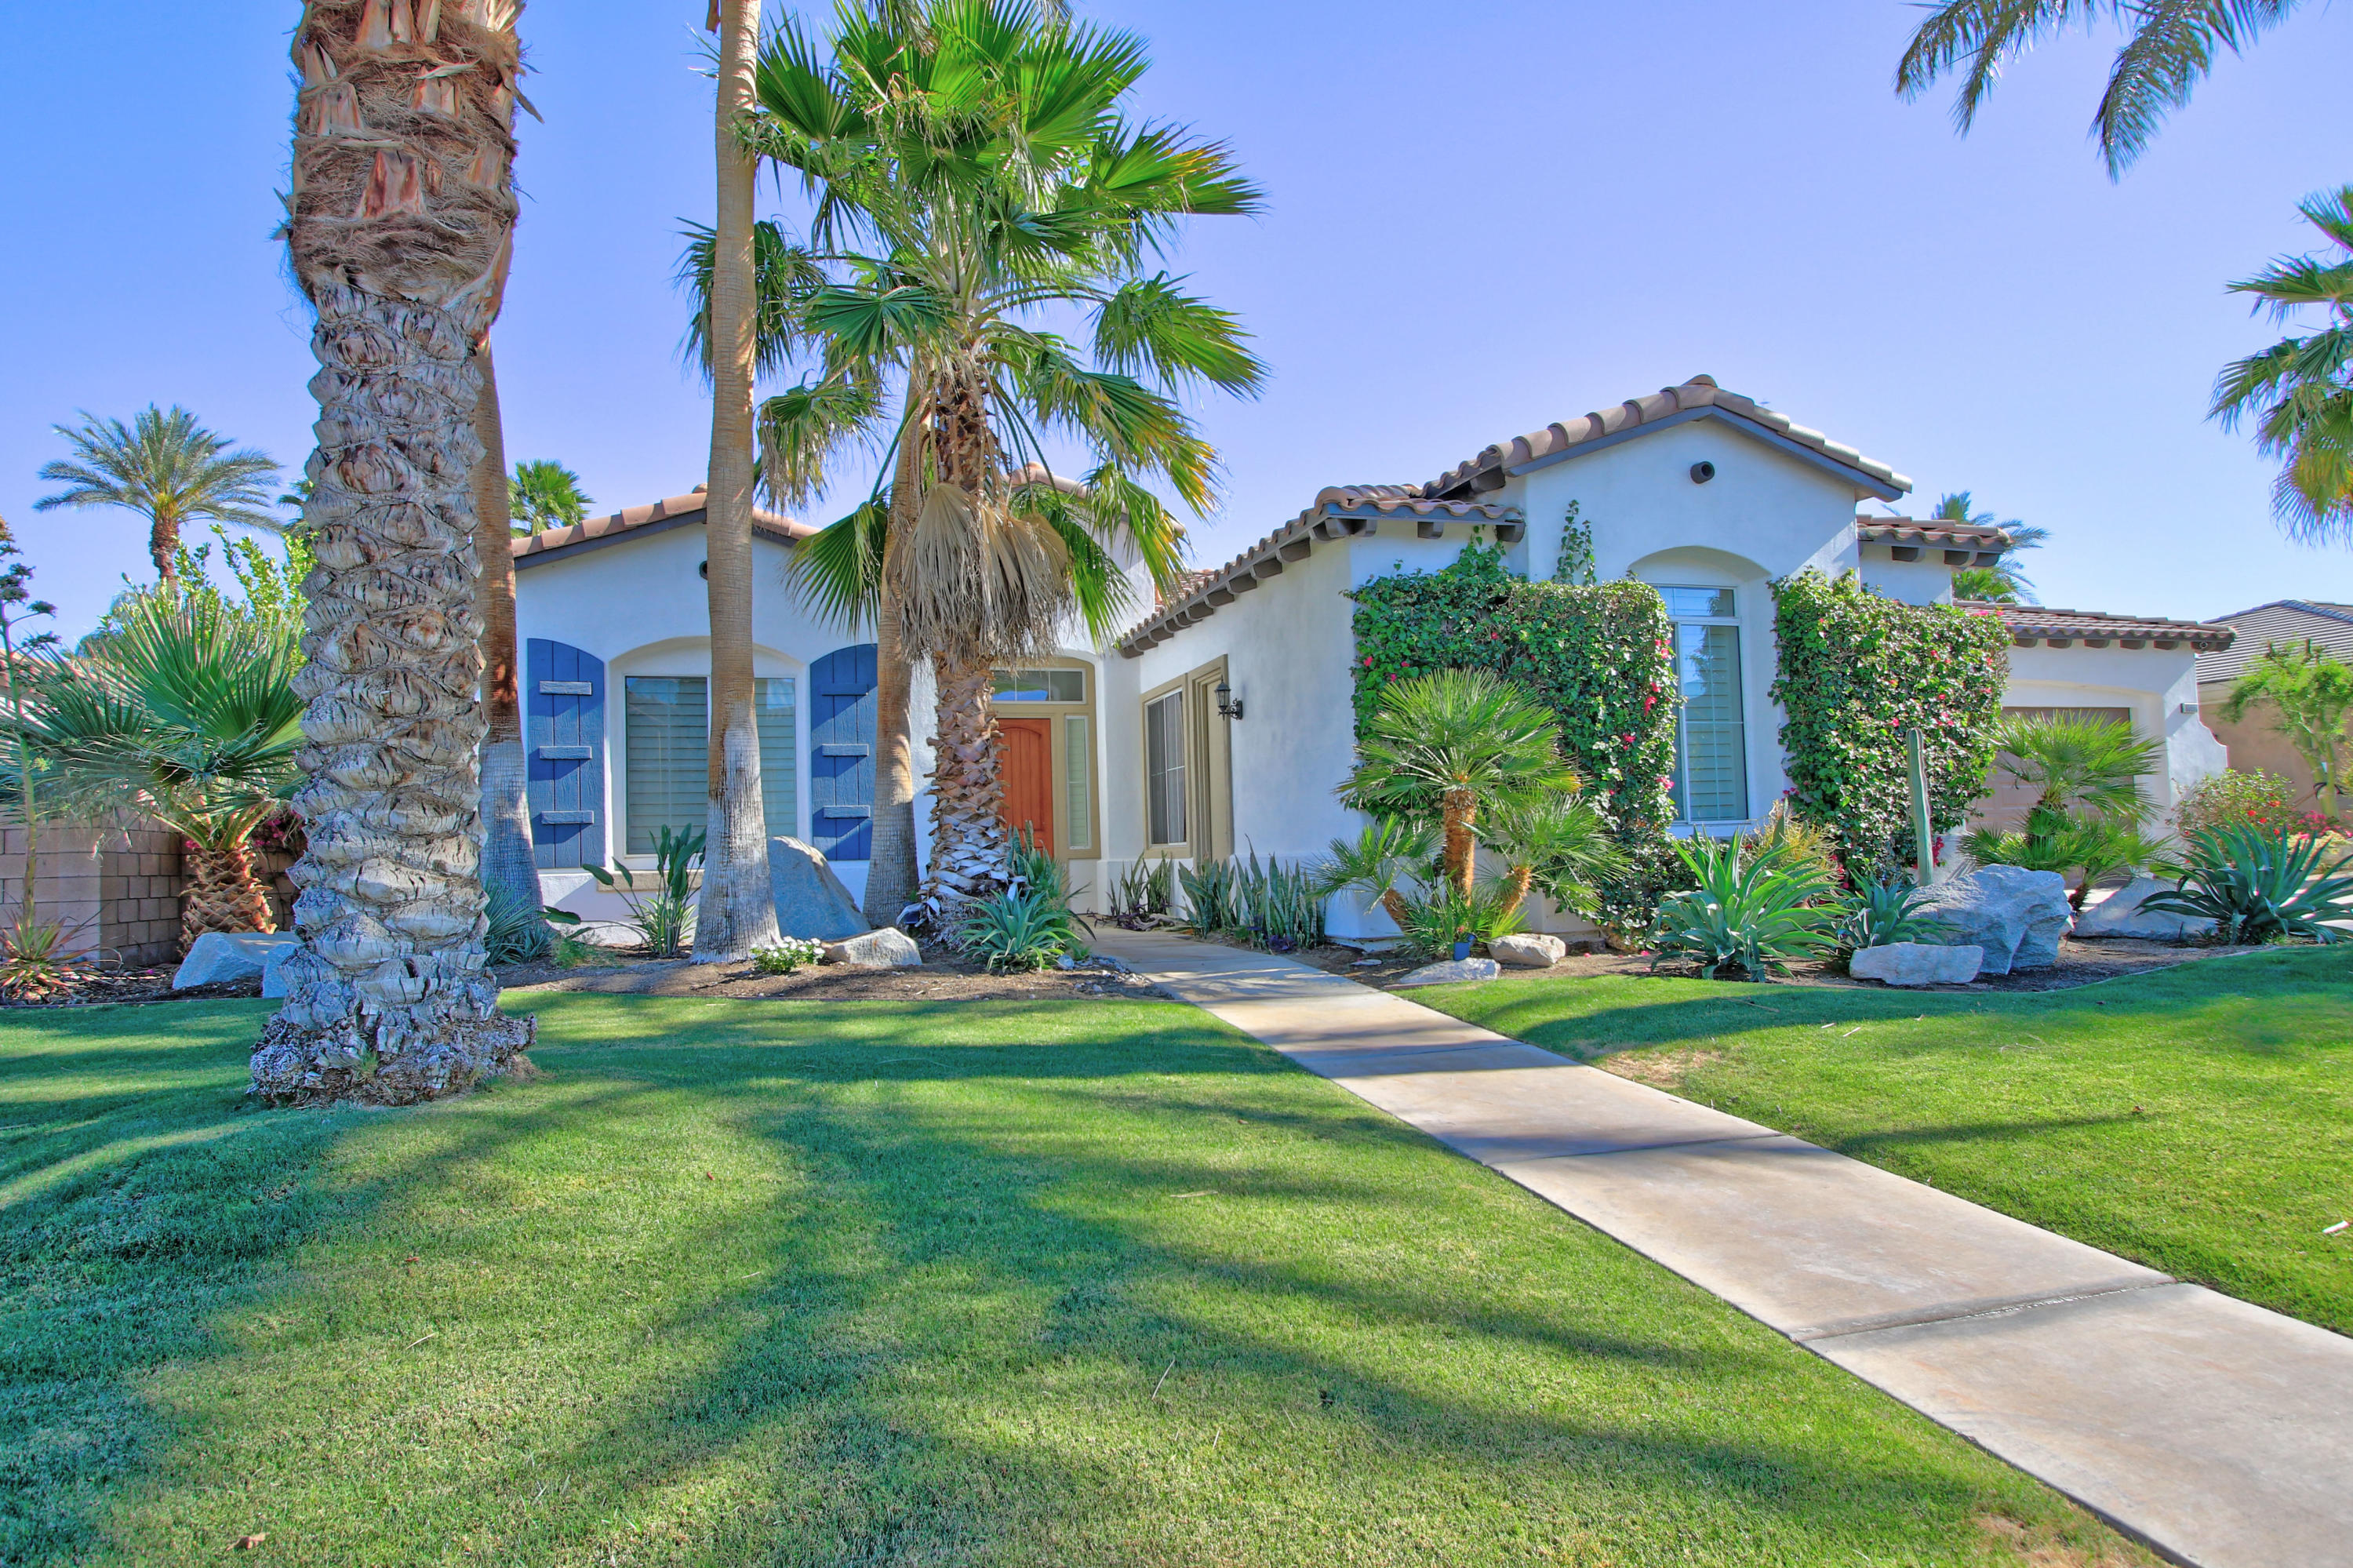 Really nice home at The Orchard, a gated community with low HOA's located off Avenue 49, one of the prettiest streets in Indio.  Seller did some gorgeous remodeling and now has to move!  The 4th bedroom has been remodeled to become a large Bonus room, which is currently used as an office.  There was an incredible kitchen remodel with Quartz counters, huge island, open shelves and new appliances.  Other features you'll love include the New floor, cabinets, tiled fireplace and stove hood, new doors, new hardware, fans, Nest system, new hot water heater, interior paint and more.  The over sized lot is beautifully landscaped, features a firepit and a lovely covered porch, with lots of room for a pool.  The furniture is included per Sellers inventory list at List price.  Minimum 30 day rentals + 18 days over festival weekends (buyers to confirm with HOA)